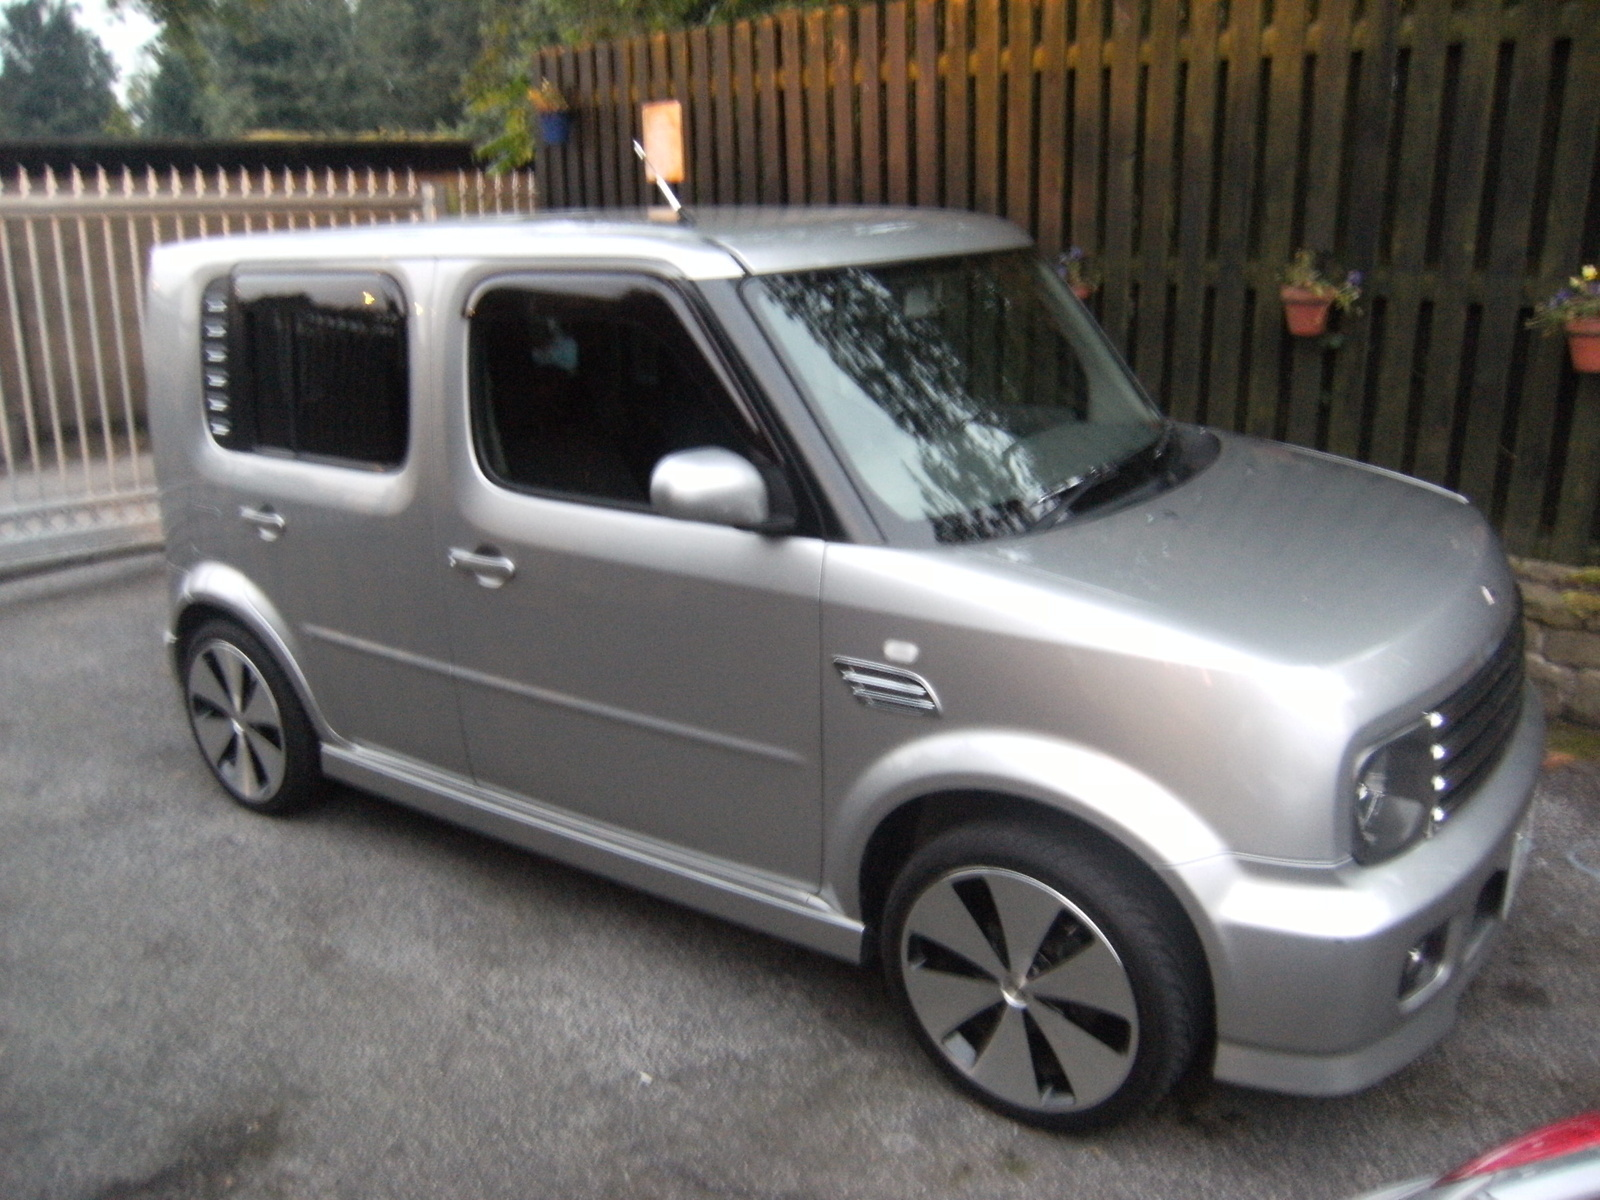 2009 nissan cube - overview - cargurus